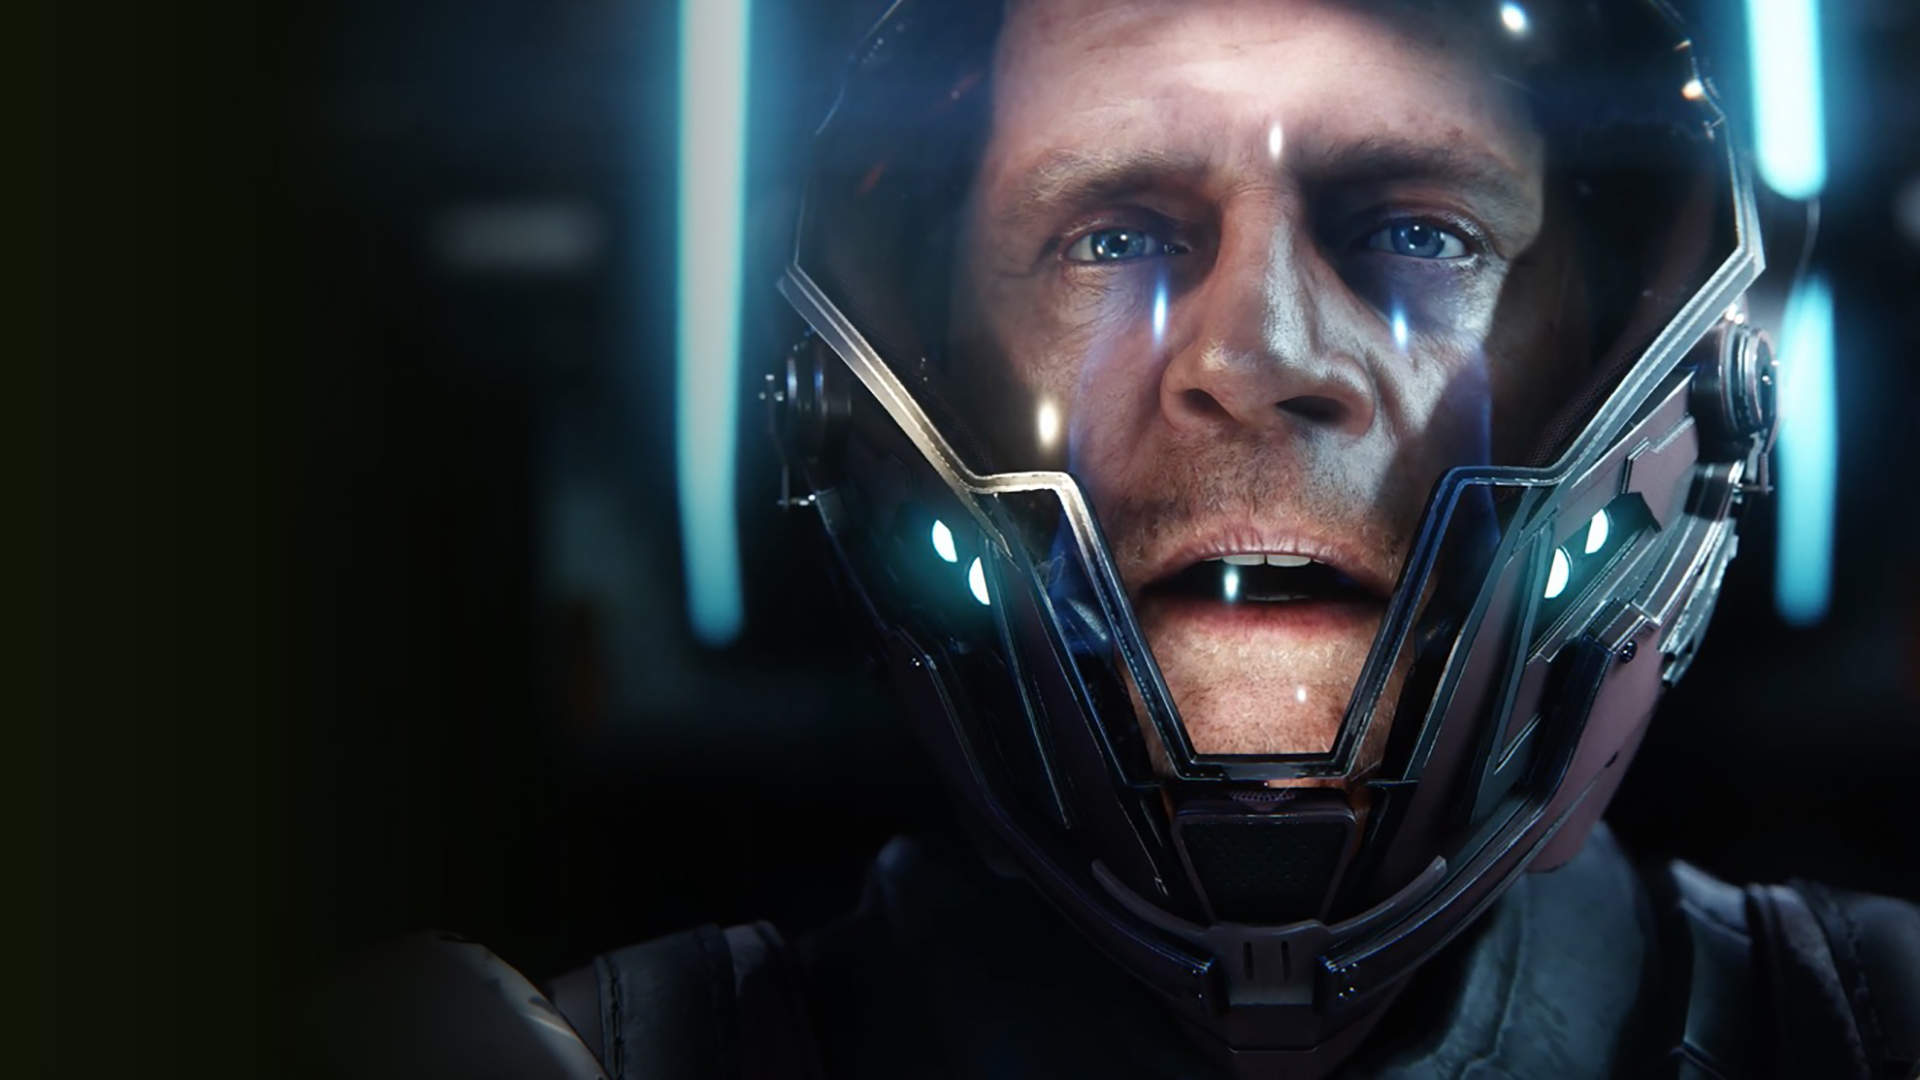 Star Citizen Trailer and Videos for IAE 2950 and Upcoming Content